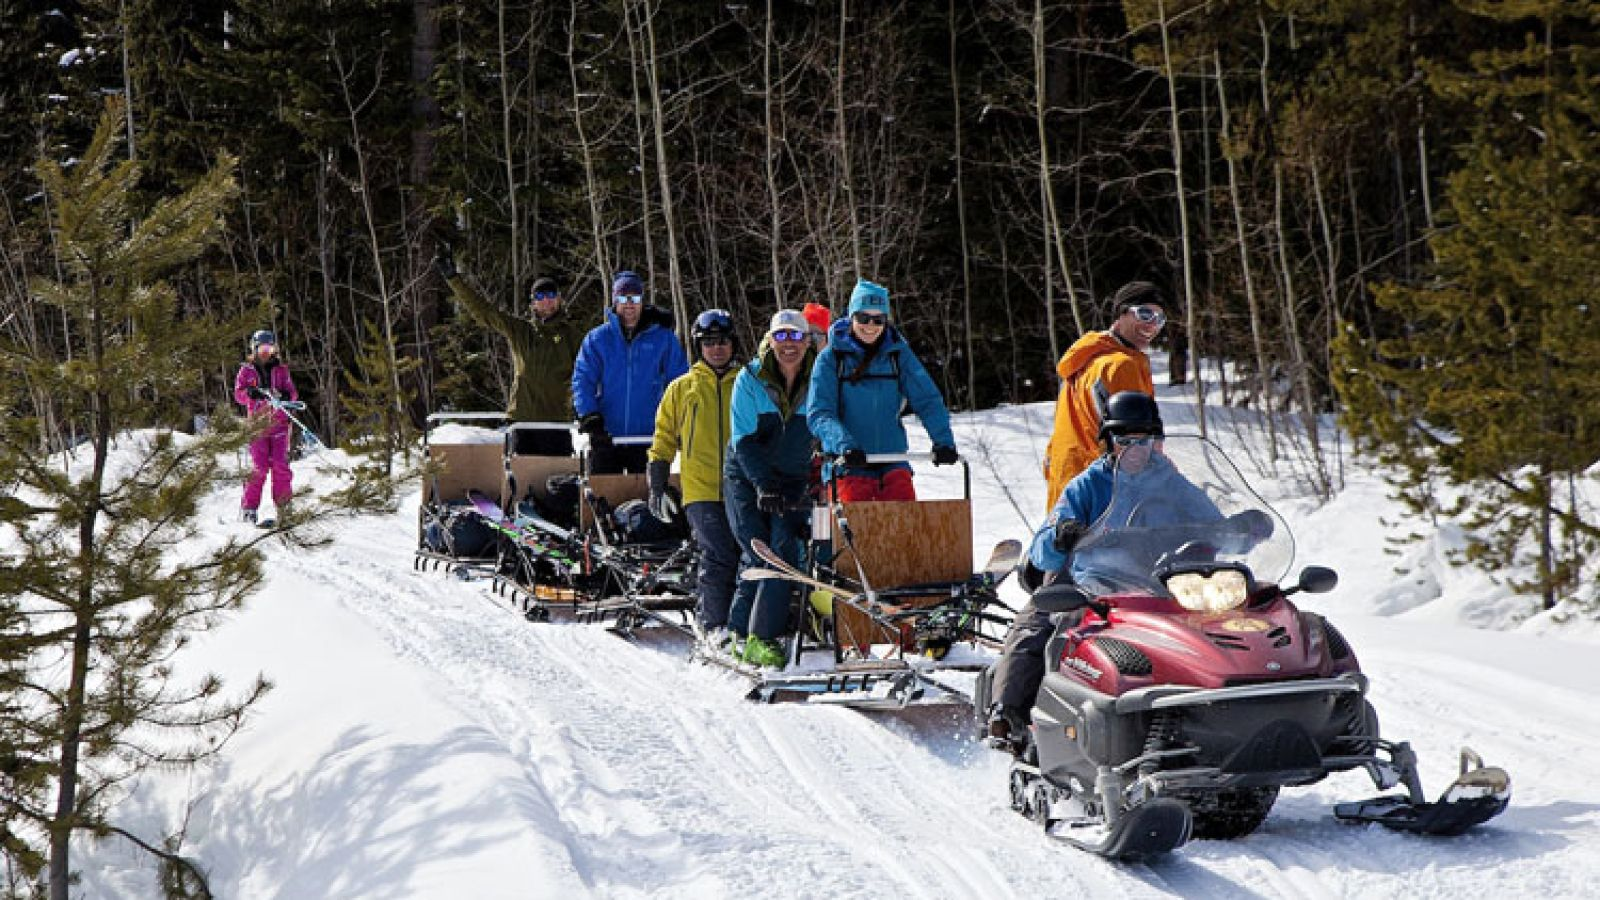 Snowmobile access ski touring.